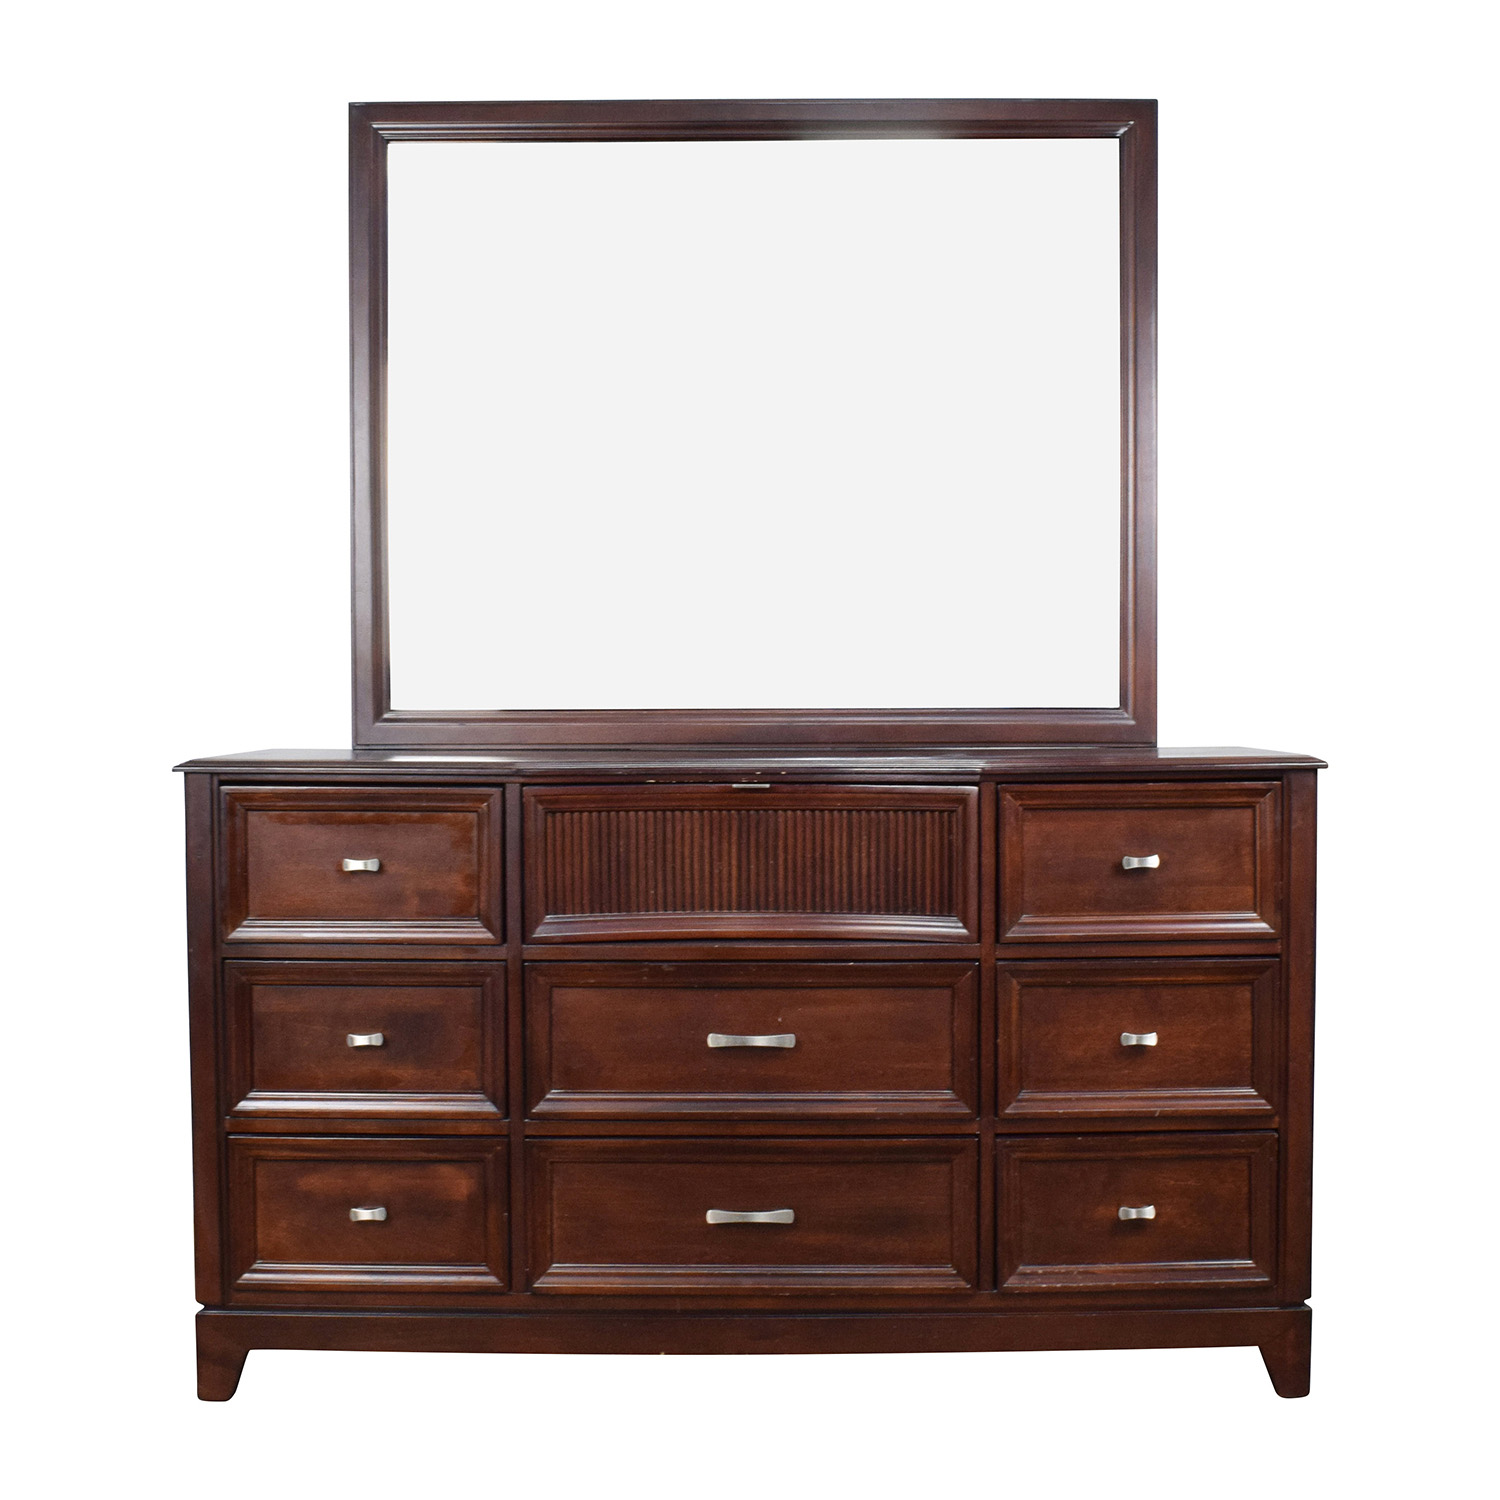 shop Bobs Furniture Cherry Wood Dresser with Mirror Bobs Furniture Dressers